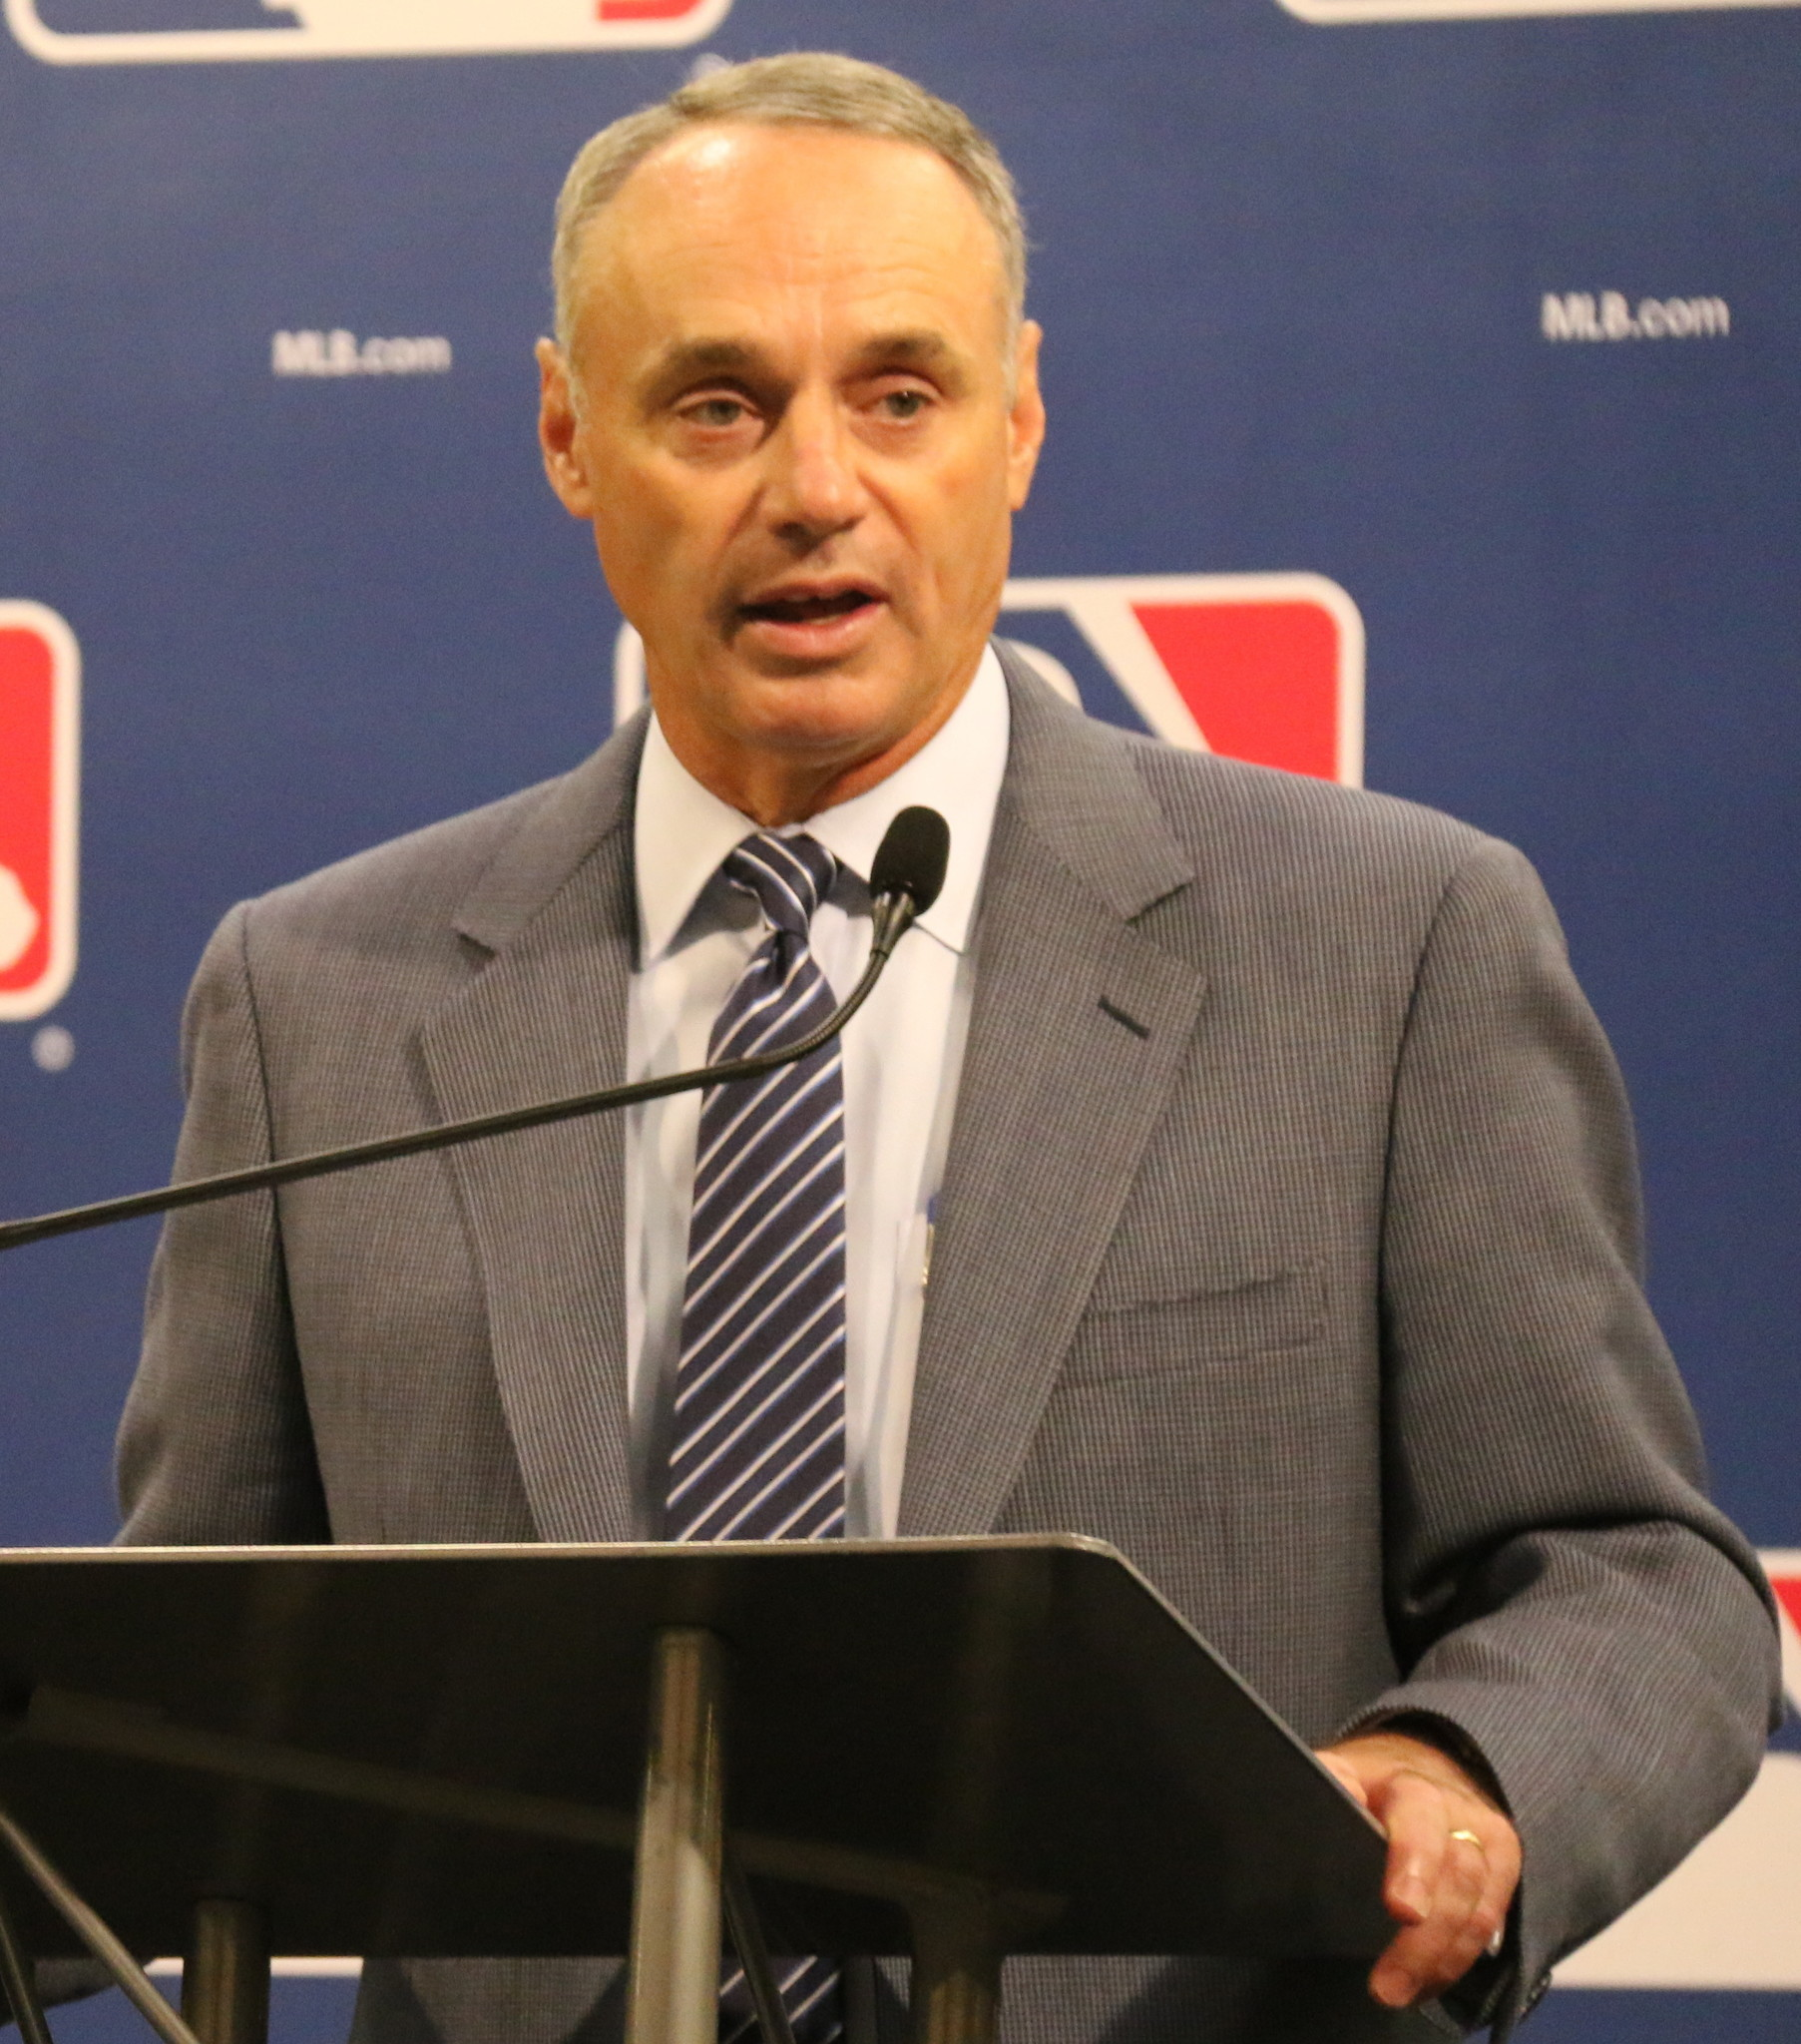 MANFRED'S LEGACY